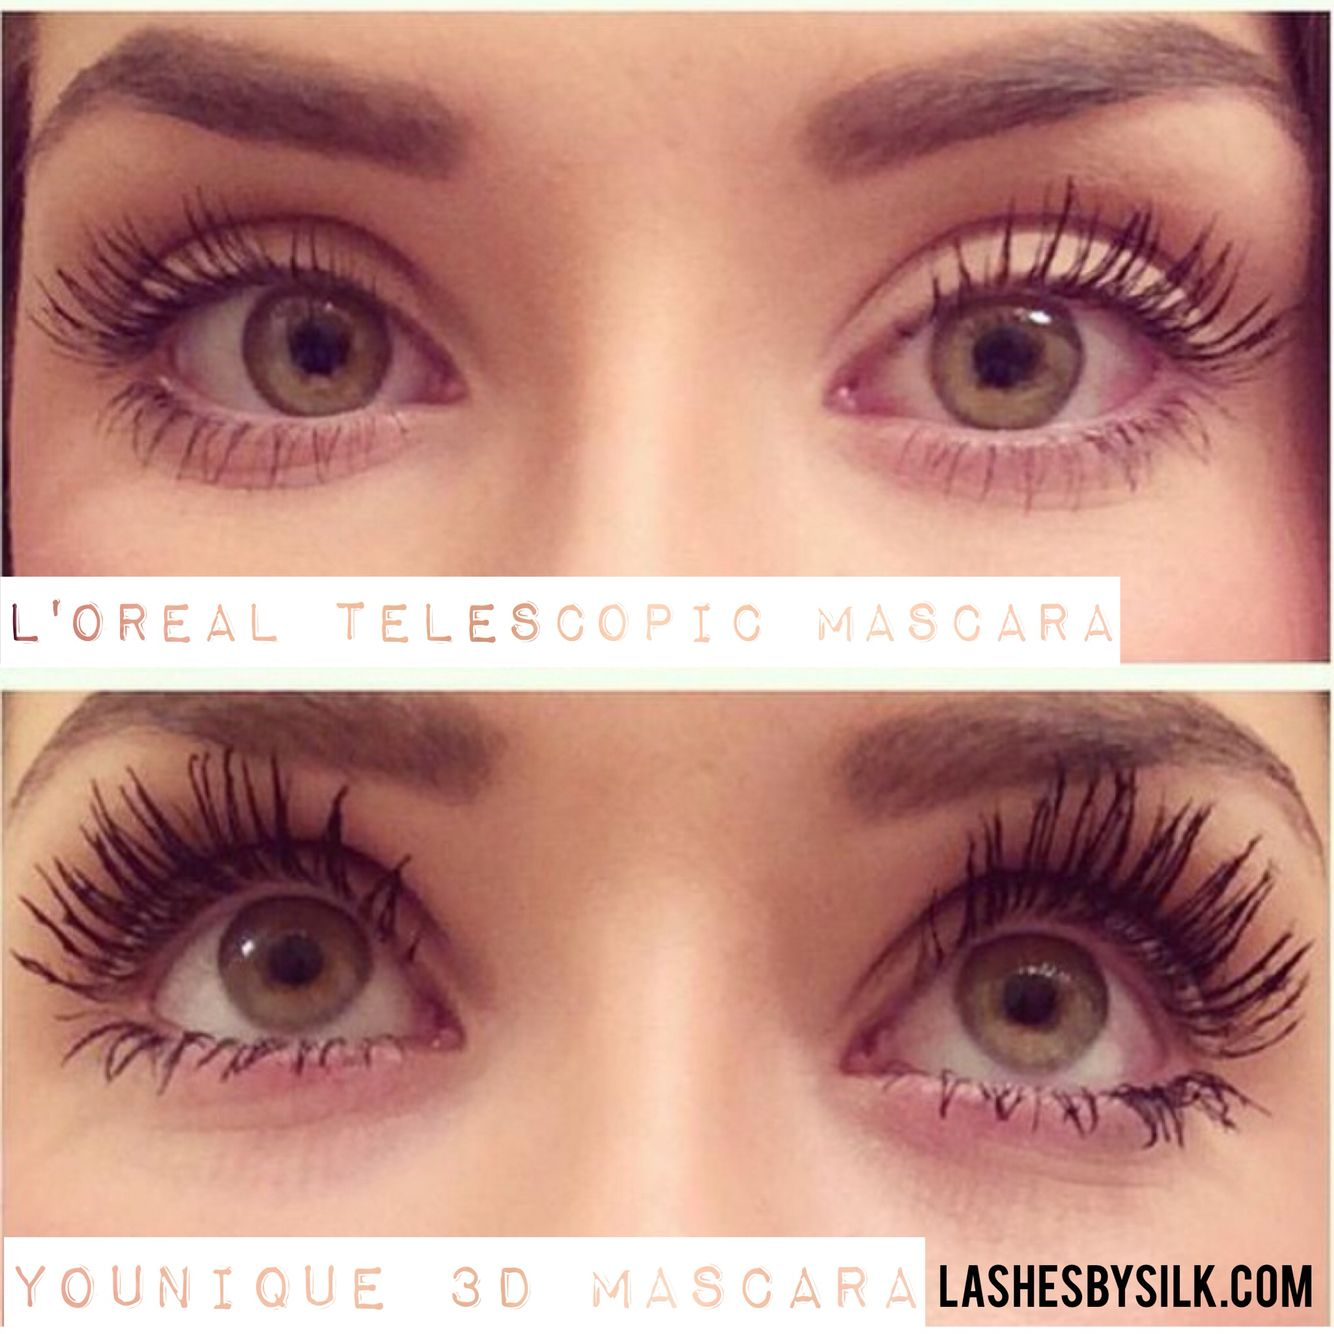 c255edff188 L'Oreal Telescopic vs Younique 3D - time to buy the best mascara ever if  you haven't done so already.